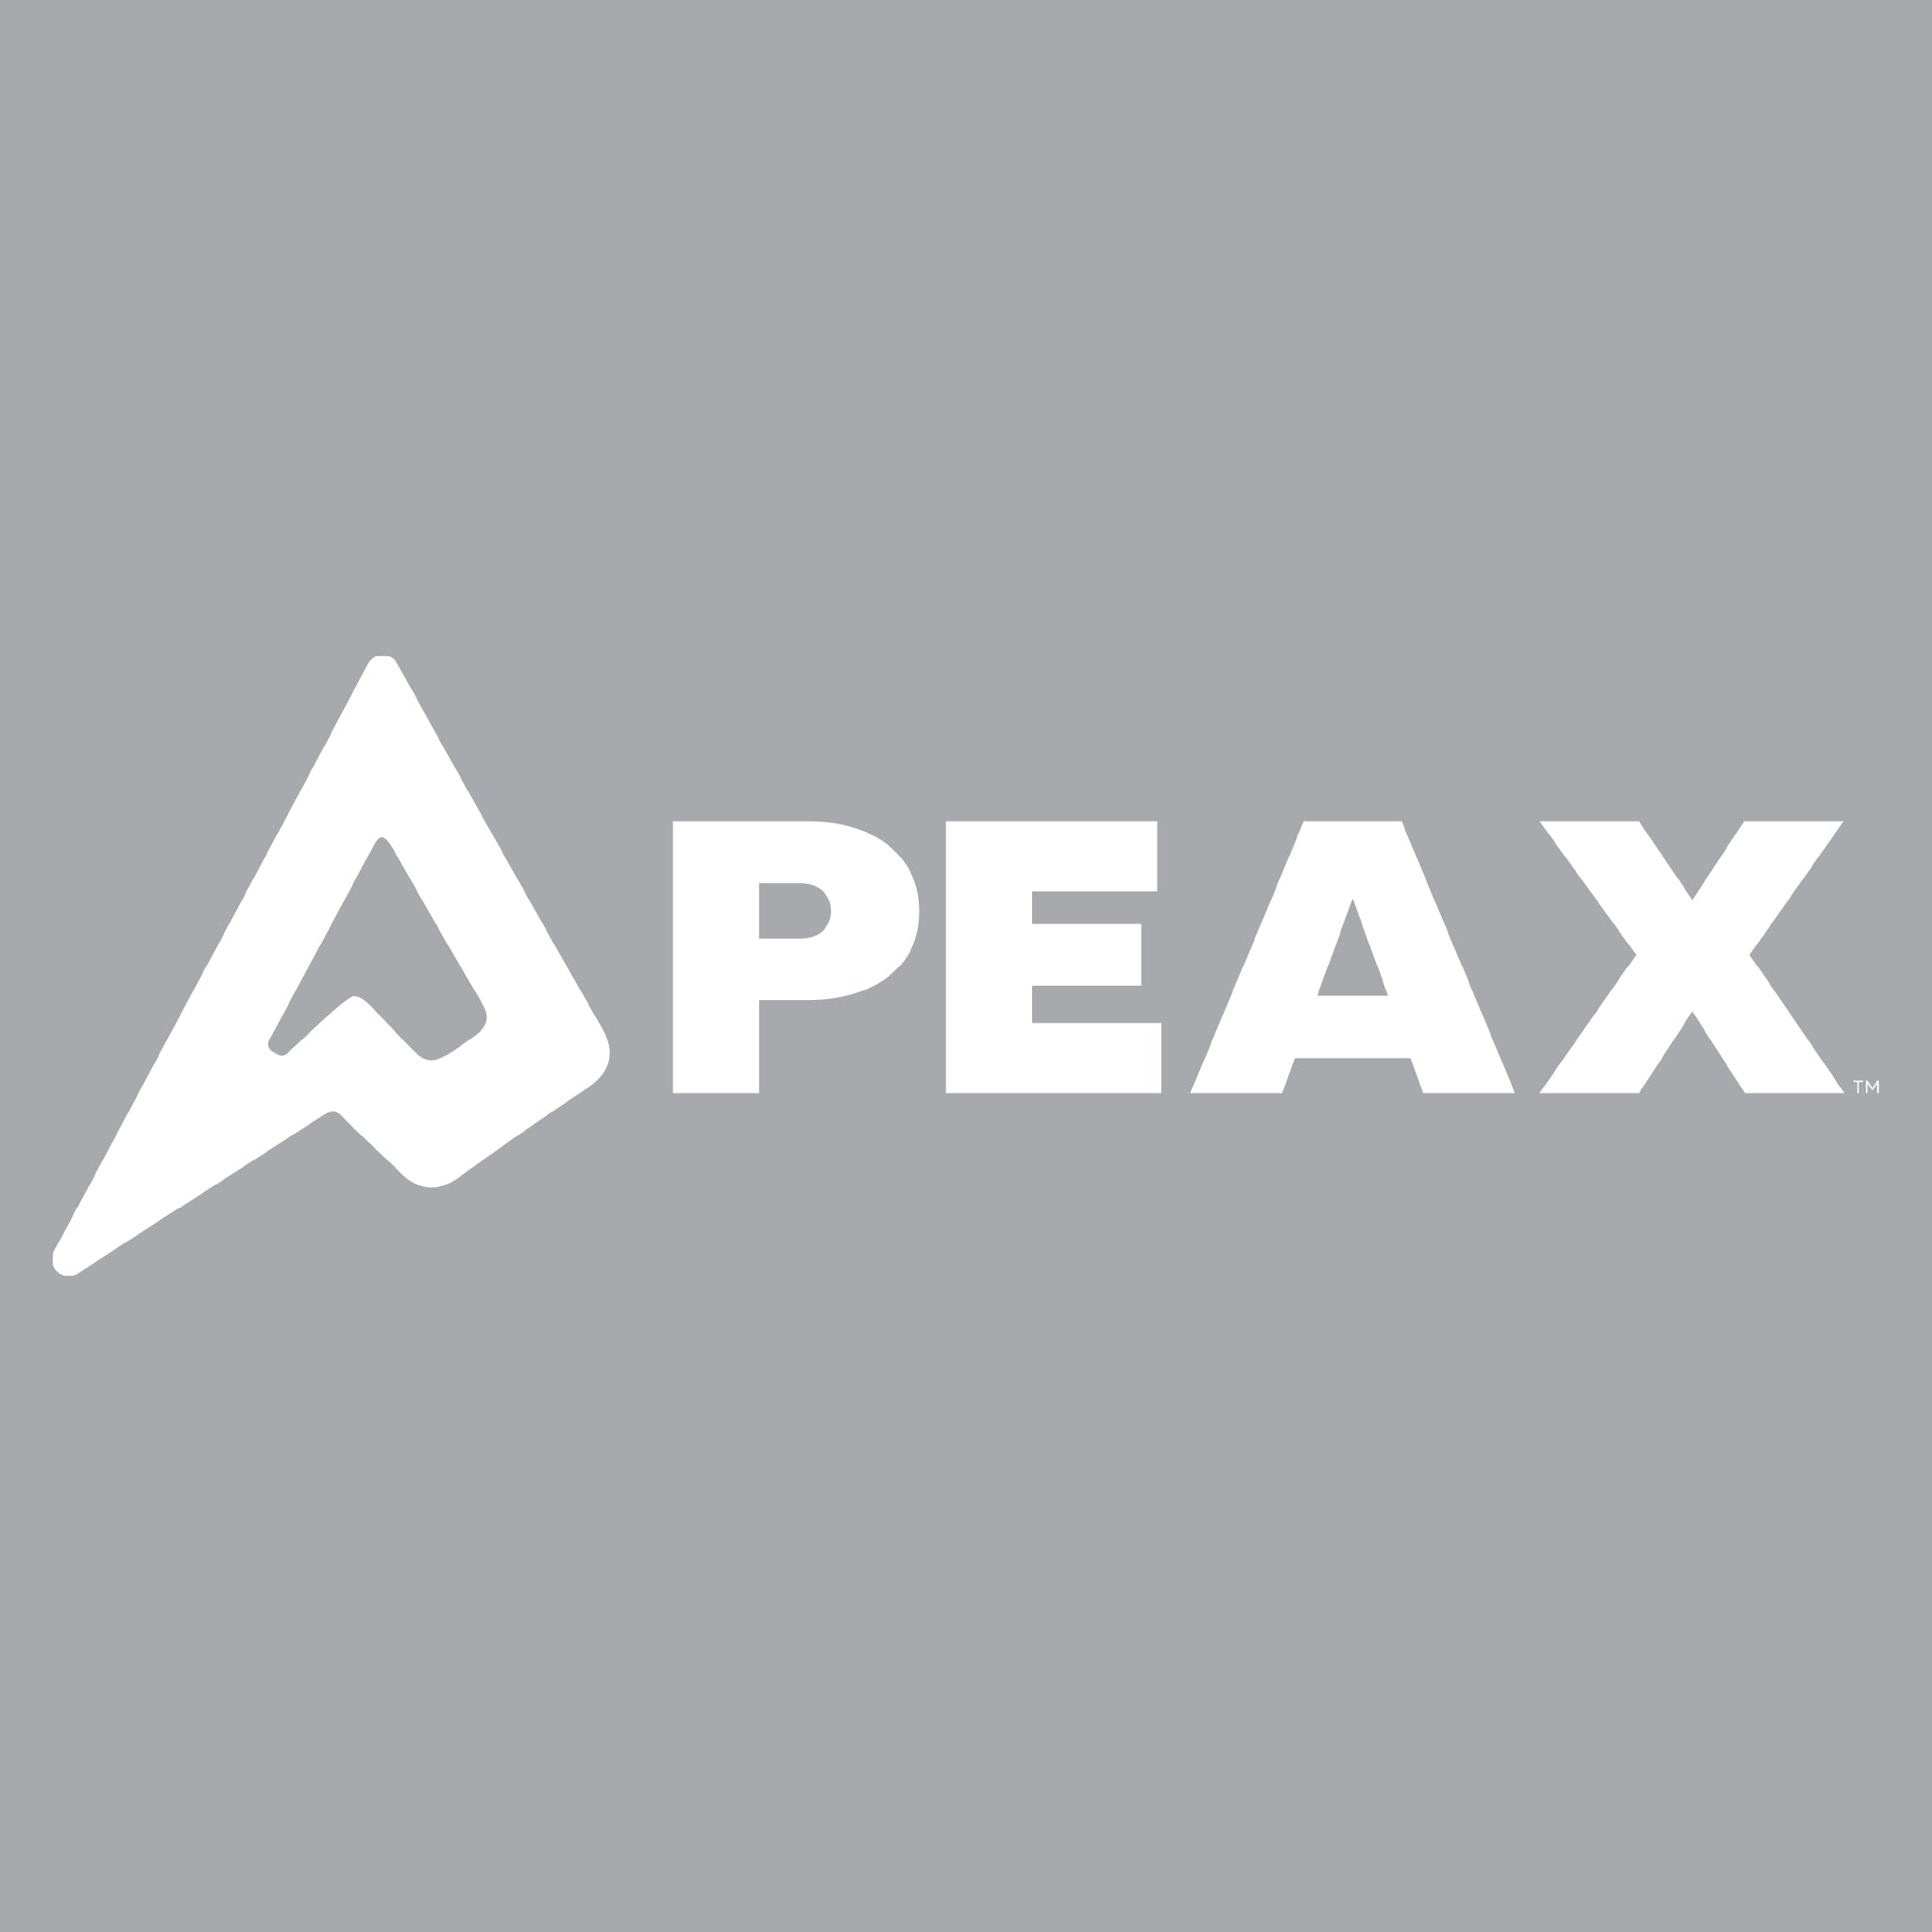 PEAX - TRANSFER DECAL STICKER (Large)